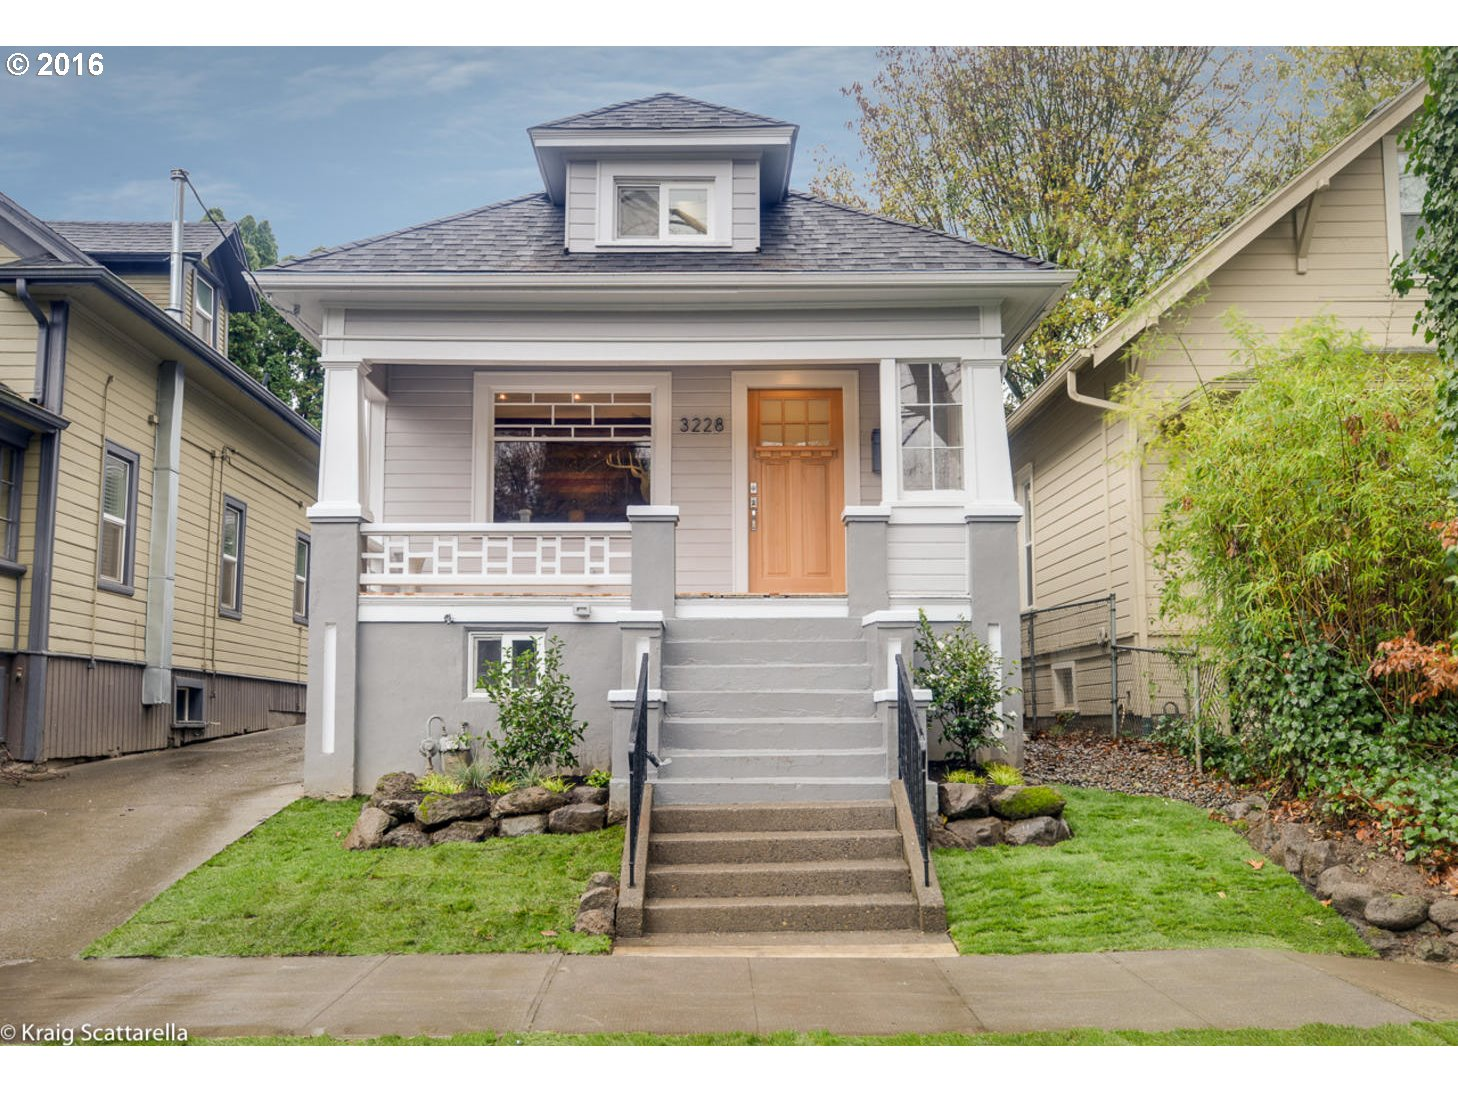 3228 SE 24TH AVE Portland Home Listings - The Rob Levy Team Real Estate